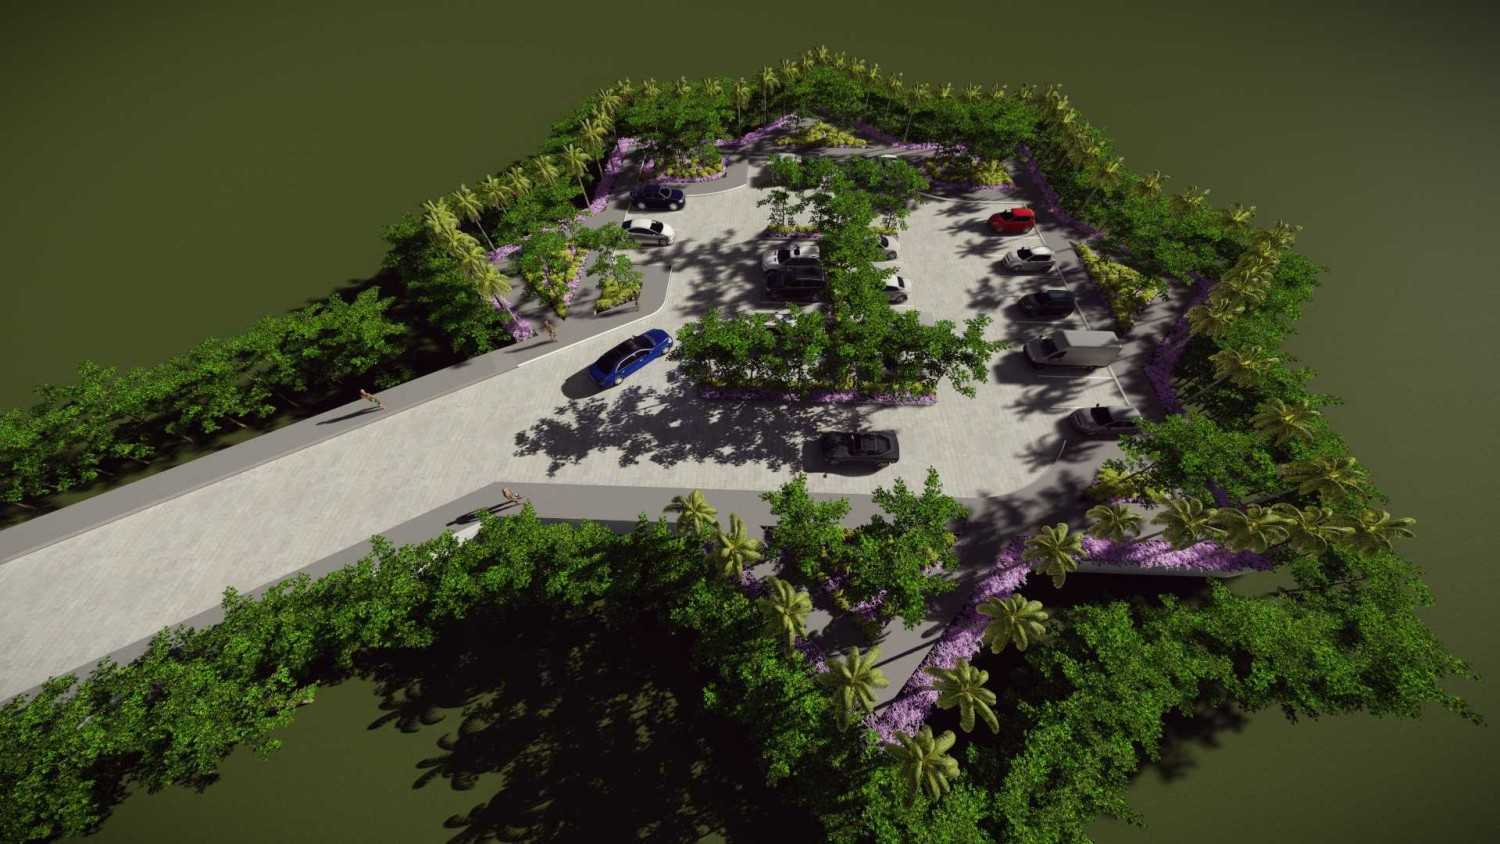 Mannor Architect Maelang Parking Area Gorontalo, Indonesia Gorontalo, Indonesia Bird Eye View  40751